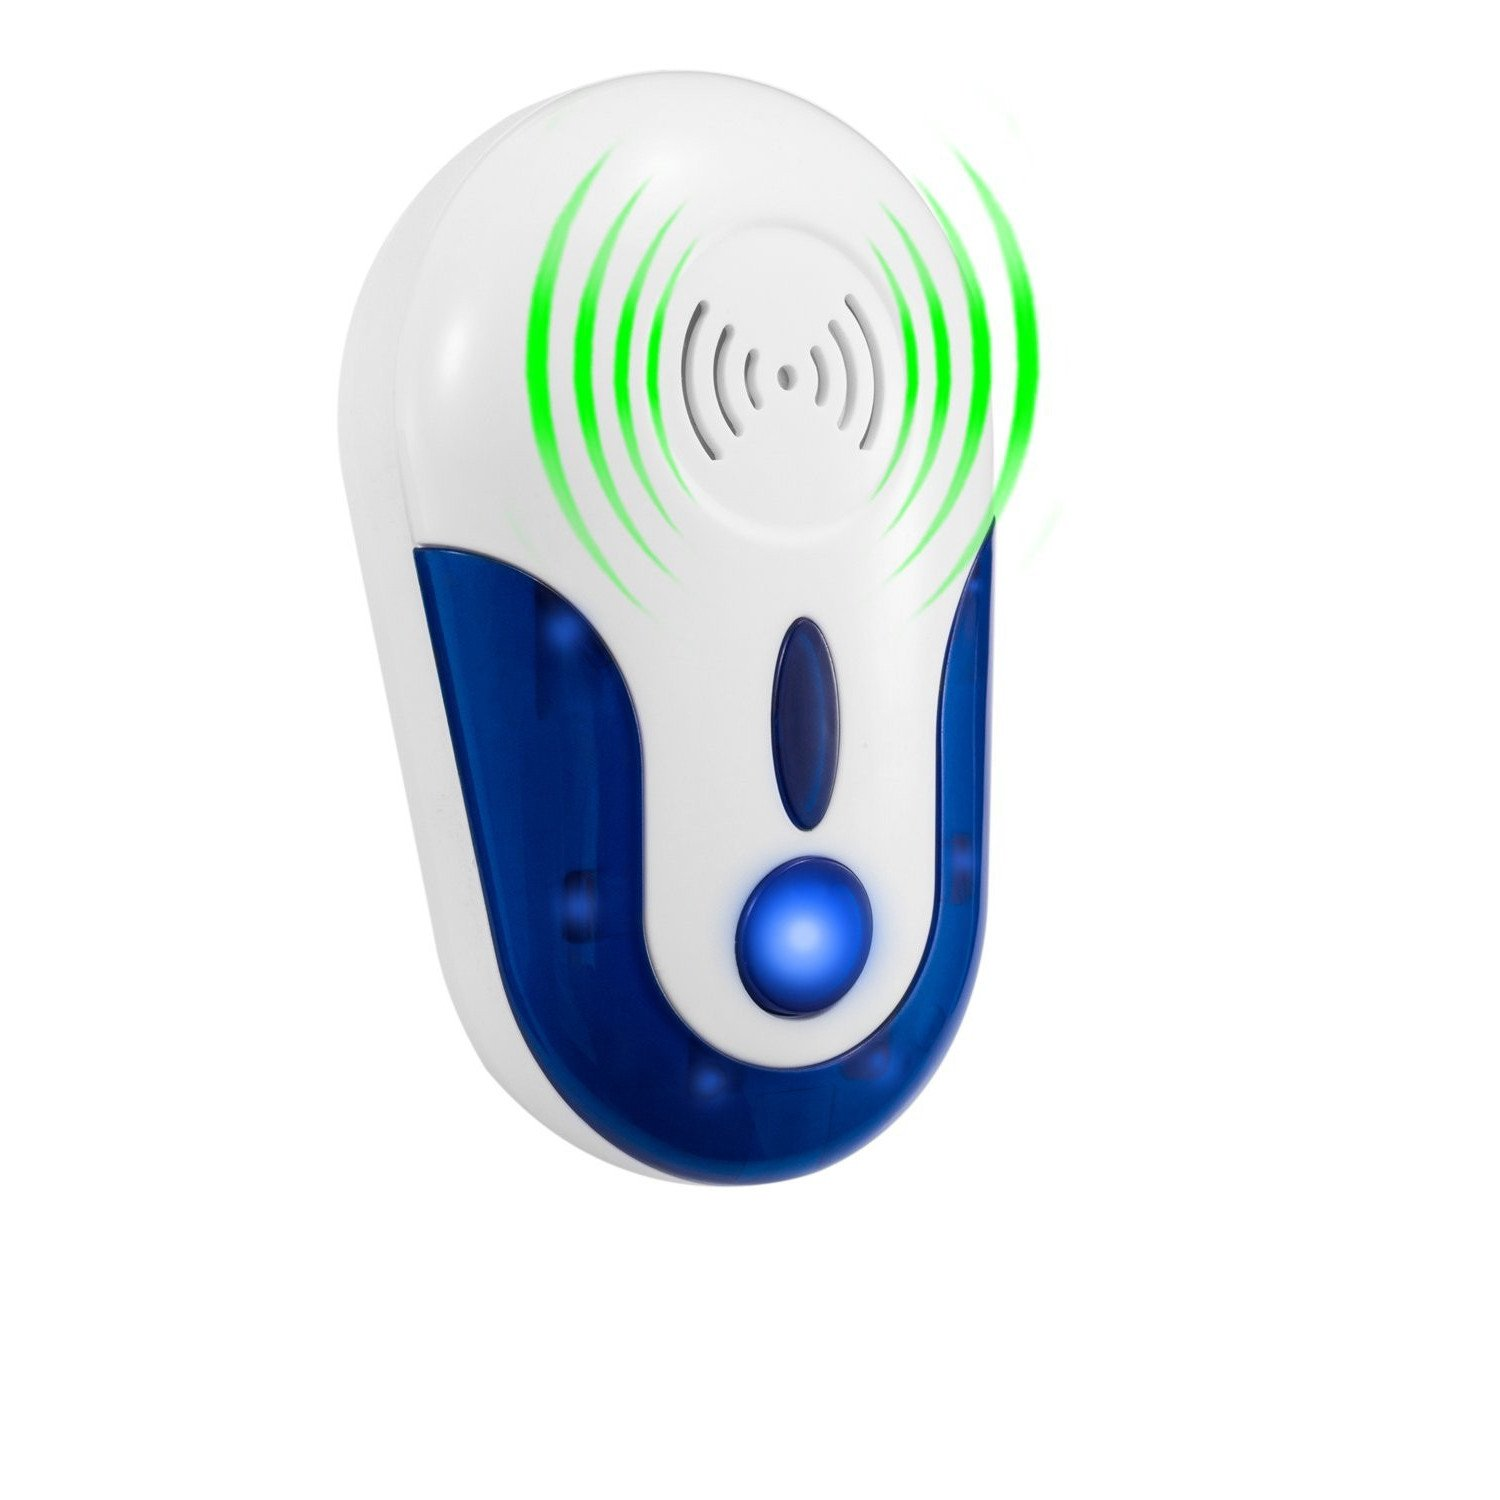 MAZU Ultrasonic Pest Repeller by SAFE for Children and Pets -Non-toxic& Environmental Friendly- Quickly eliminates flies, cockroaches, spiders, fleas, mice, rats, and other pests (1)